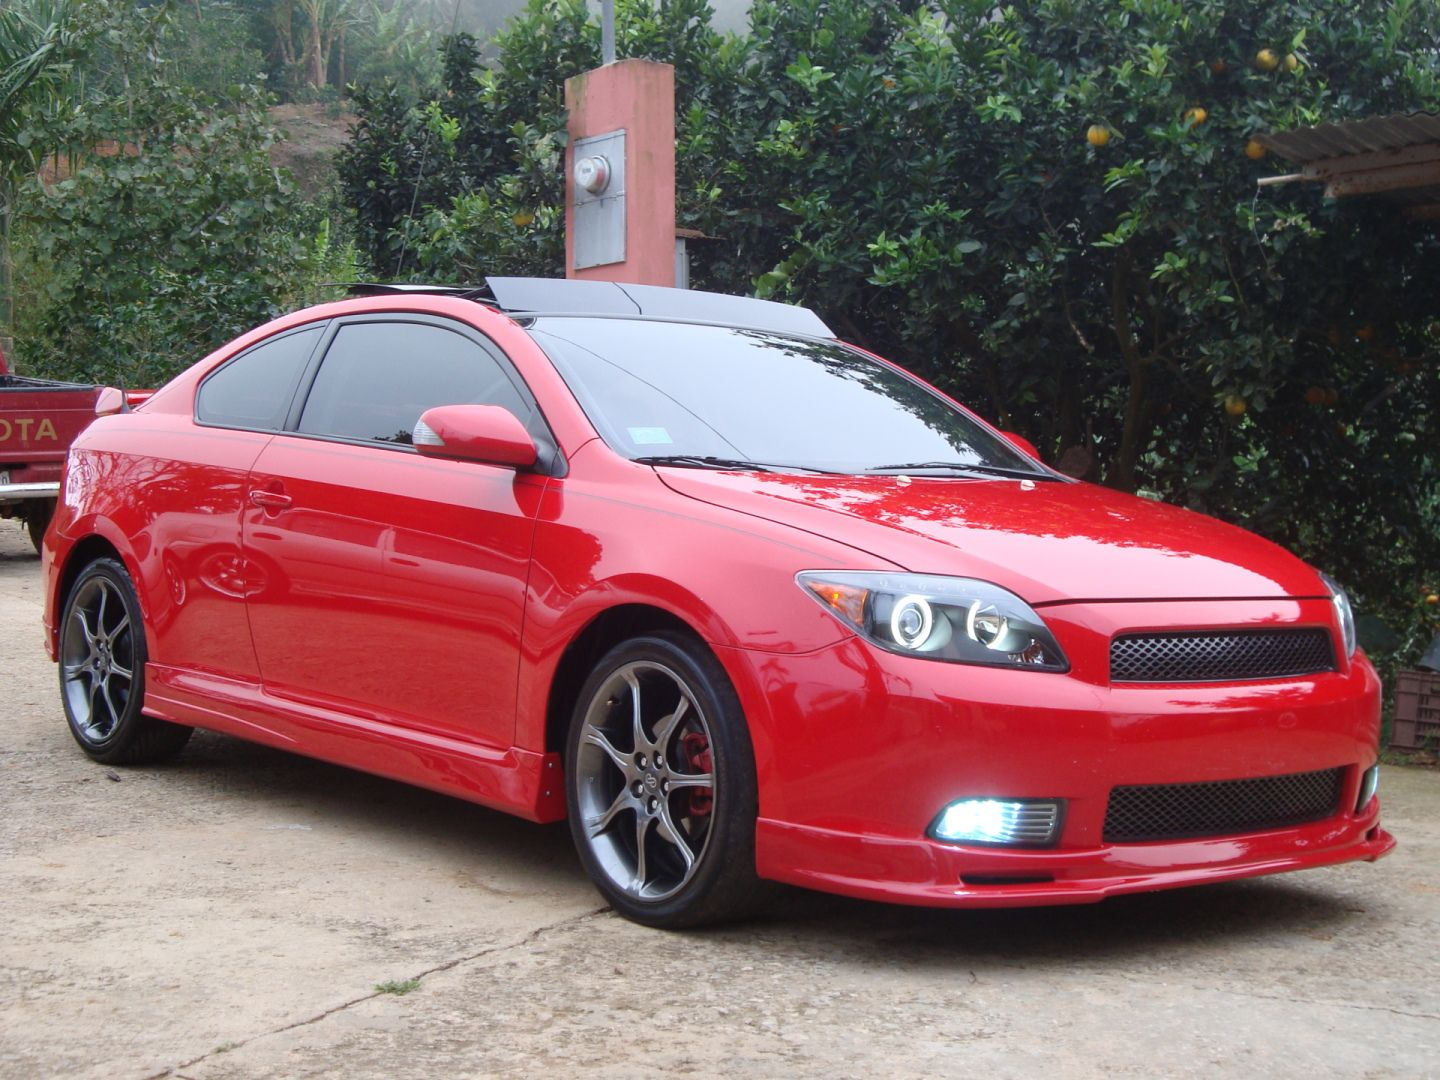 Best 25 2005 Scion Tc Ideas On Pinterest Scion Tc Used Scion Tc And Scion Tc Accessories